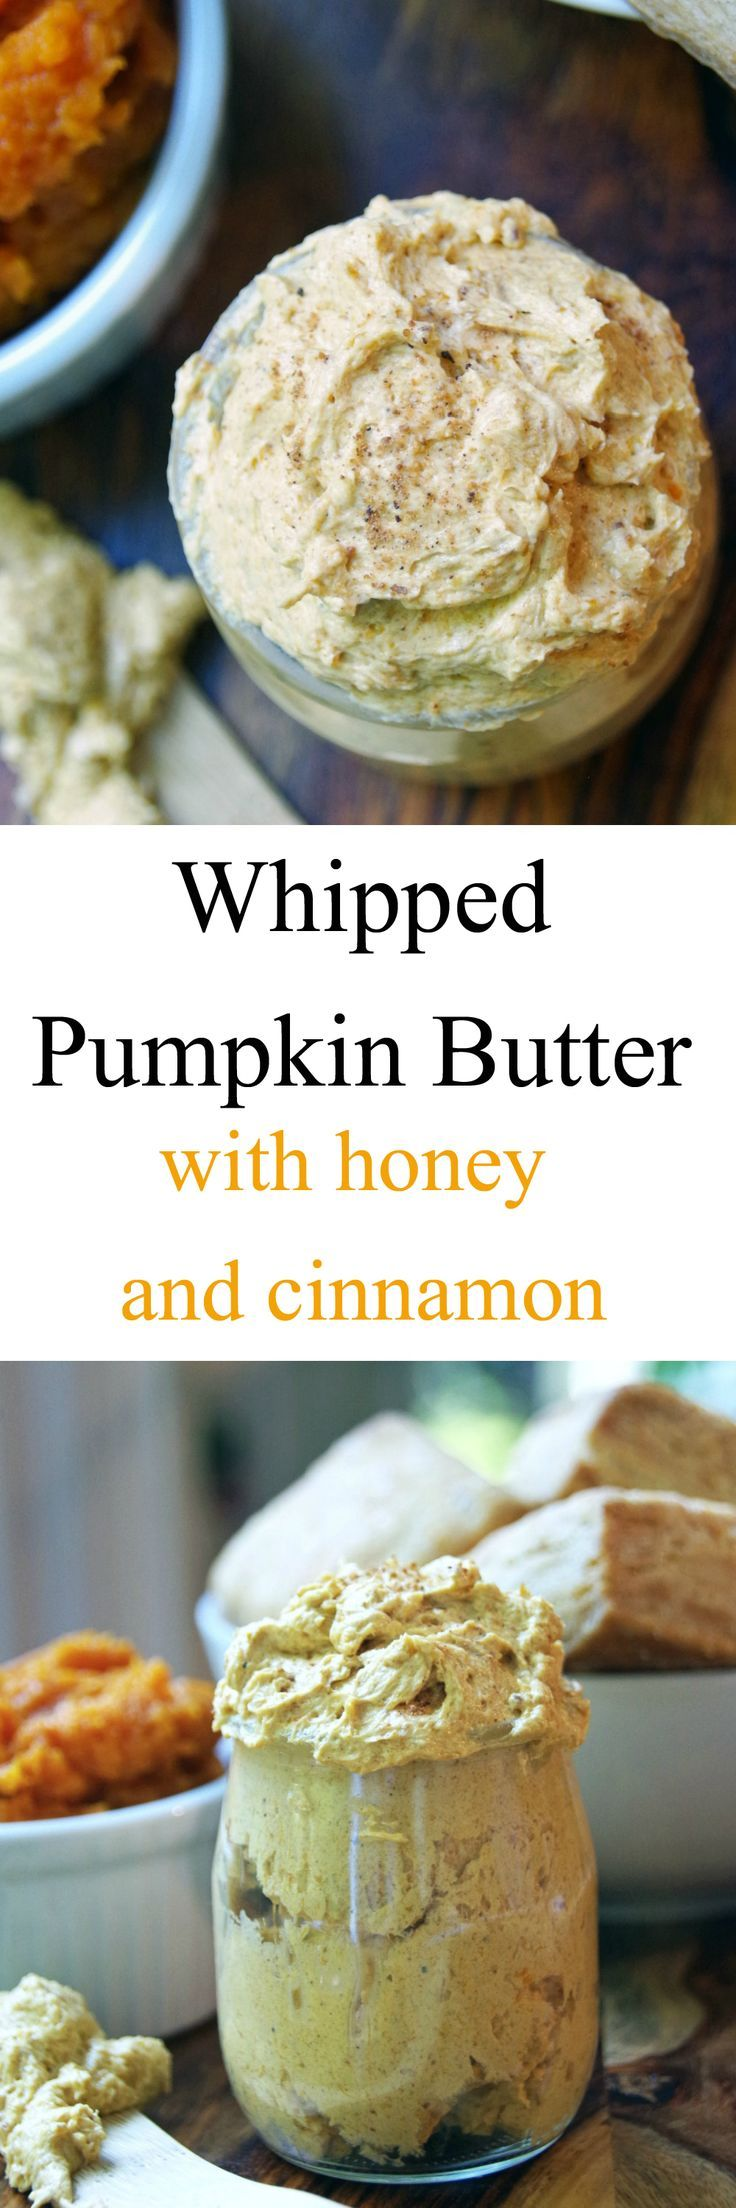 Looking for easy pumpkin recipes? This whipped pumpkin butter with honey and cinnamon is delicious. A pumpkin butter recipe that is so incredibly creamy!